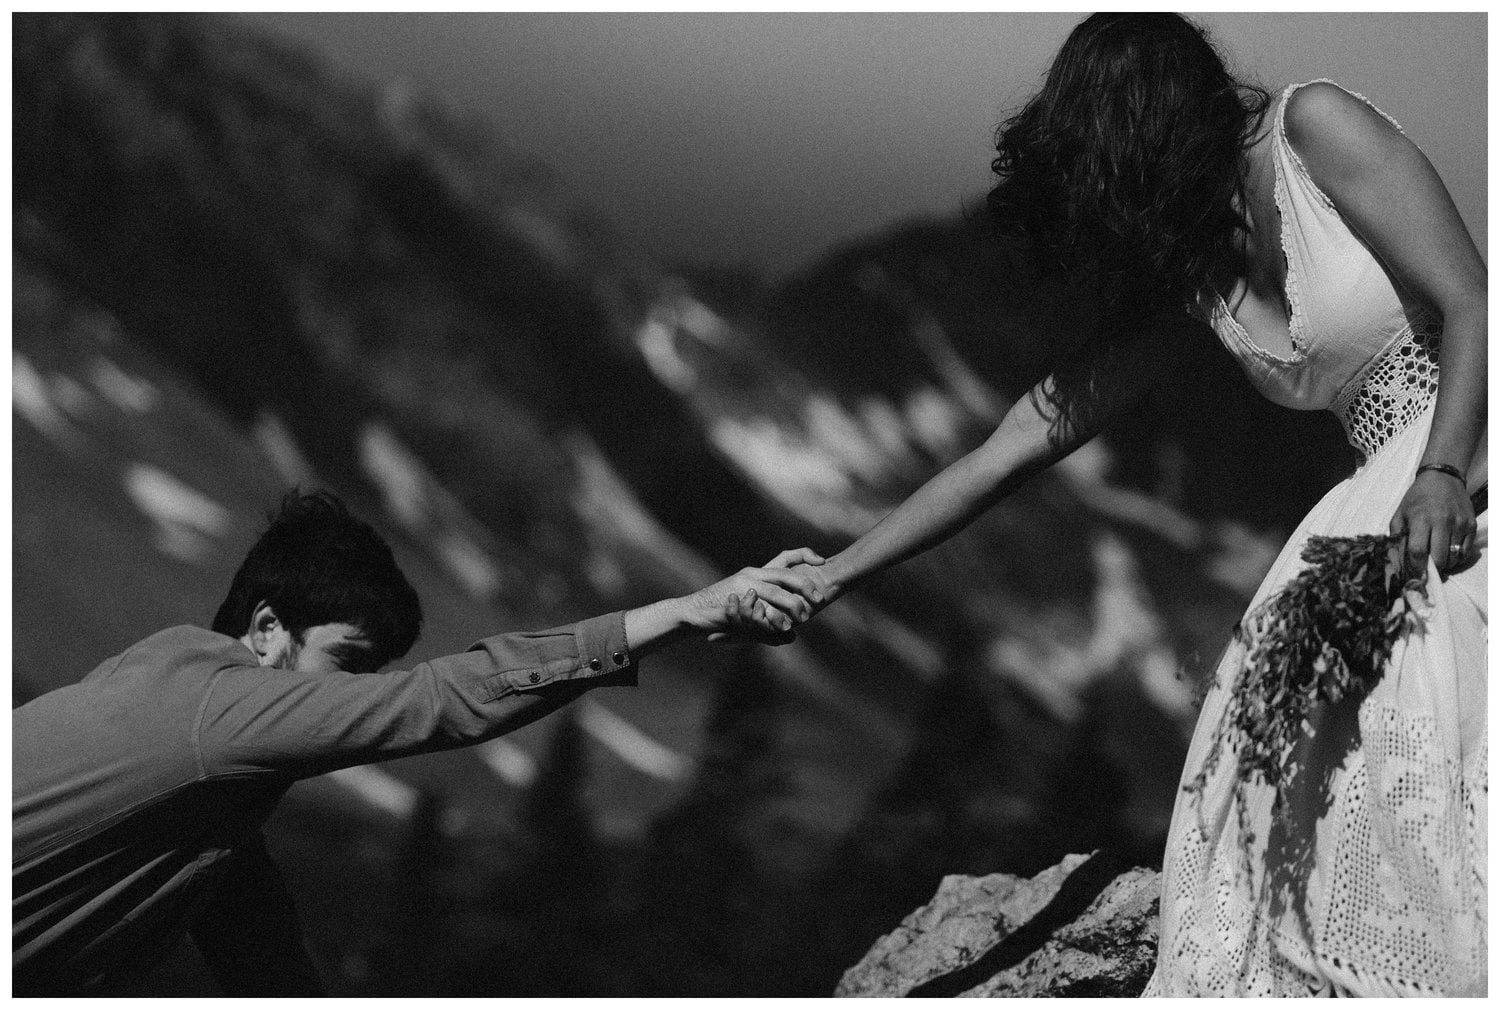 A bride helps a groom climb up as they hold hands. Photo is in black and white.